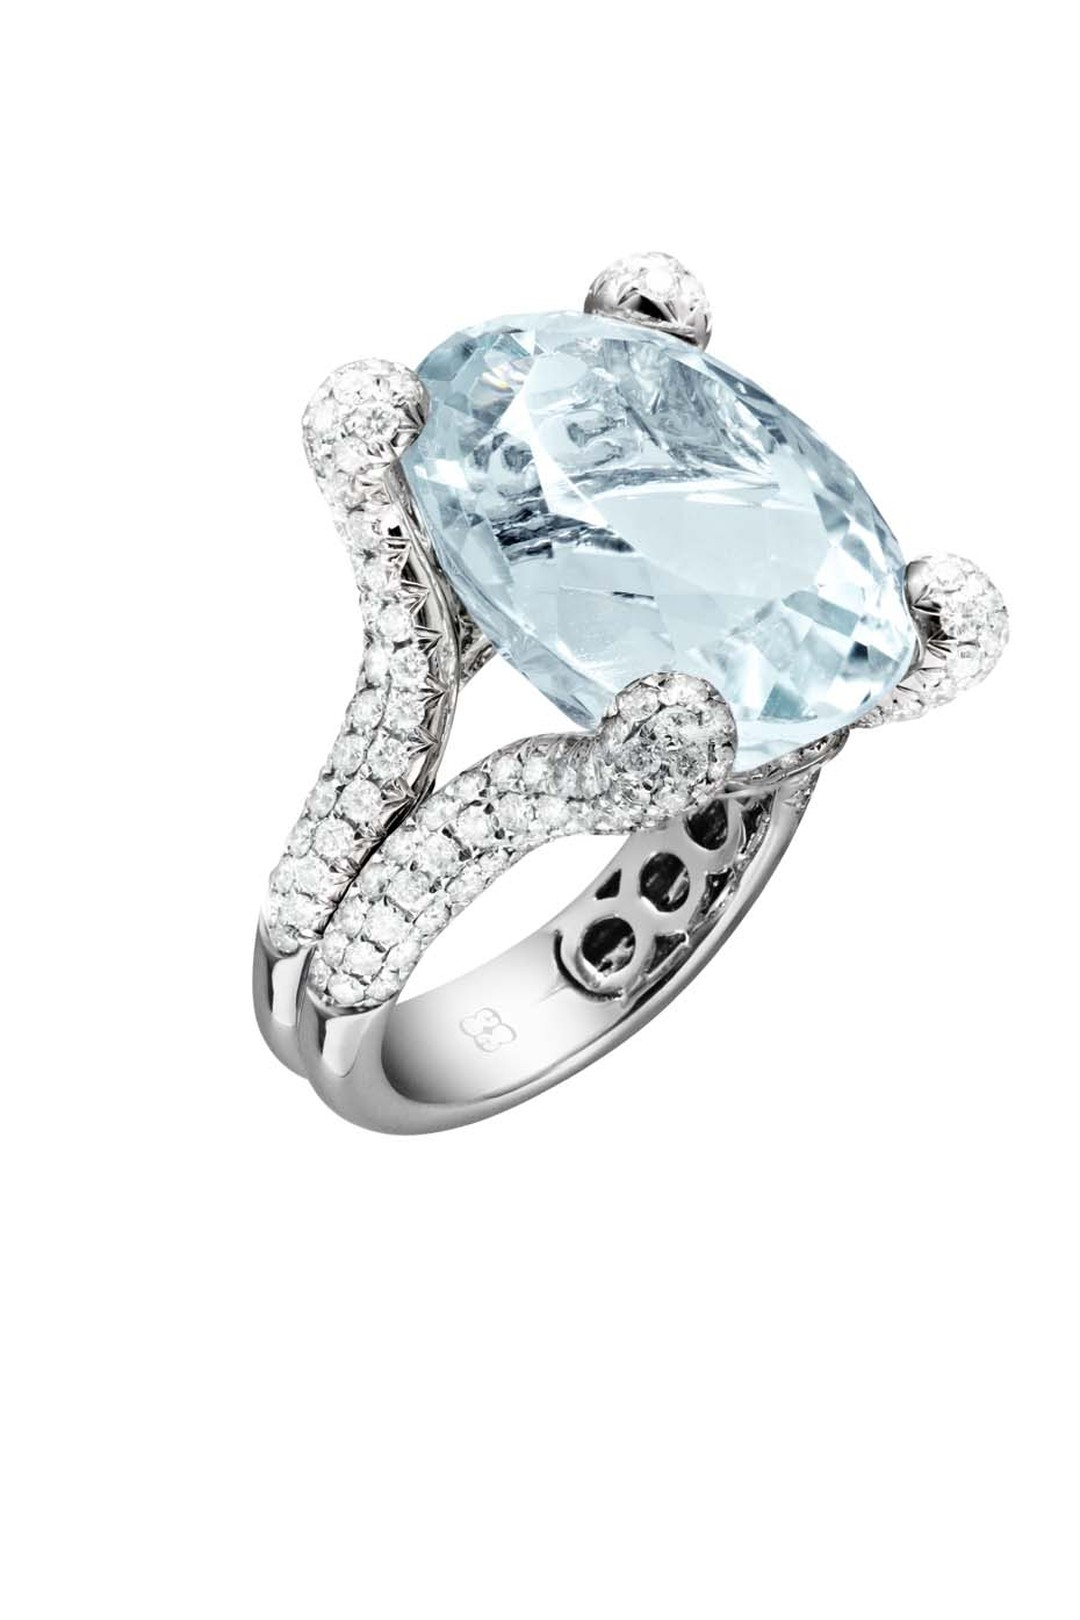 Elena C one-of-a-kind aquamarine ring set in white gold with diamonds (10,470€).